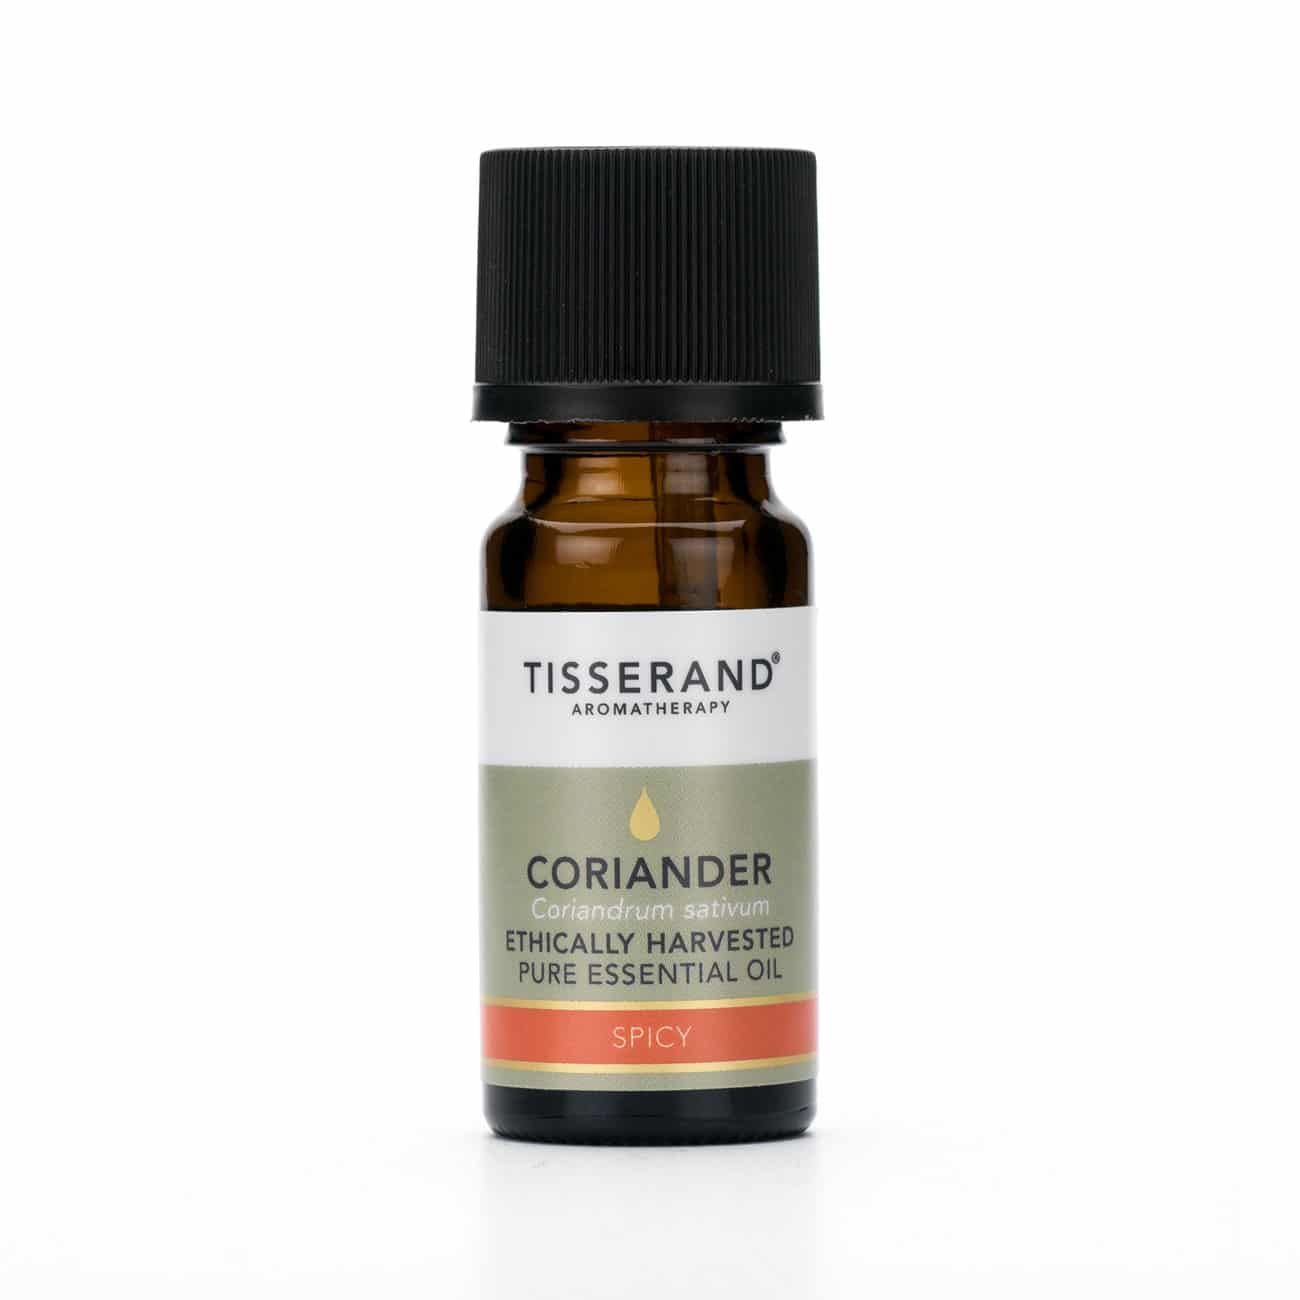 Coriander Ethically Harvested Pure Essential Oil 9ml